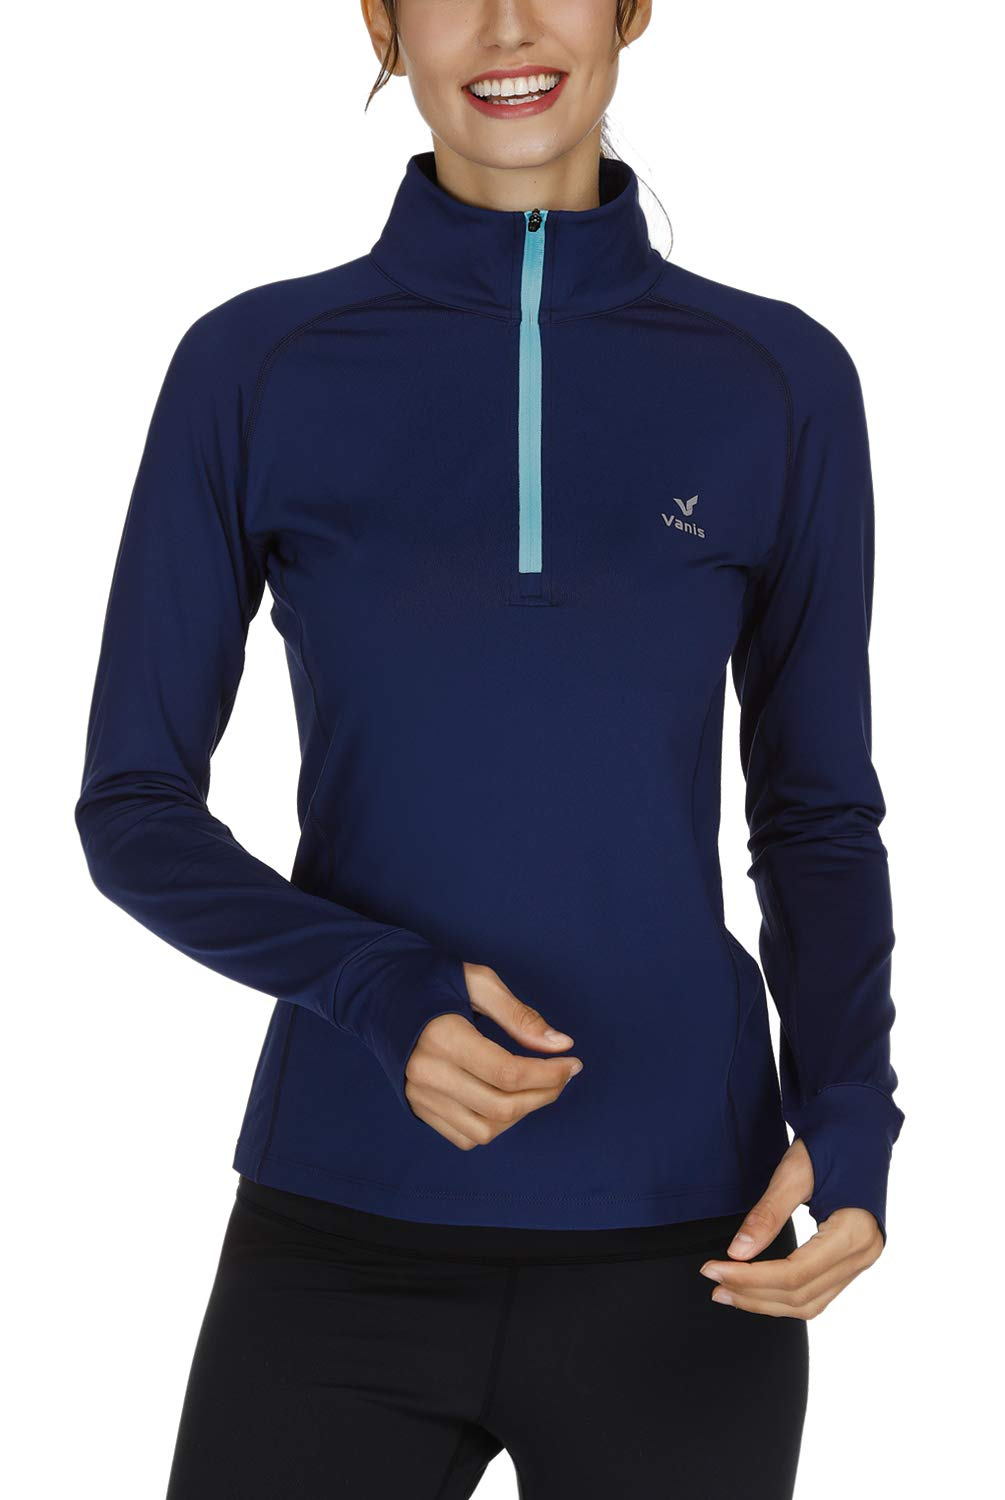 Vanis Women's Workout Yoga Track Jacket Long Sleeve Running Shirt 1/2 Zip Pullover (Blue, X-Large) by Vanis